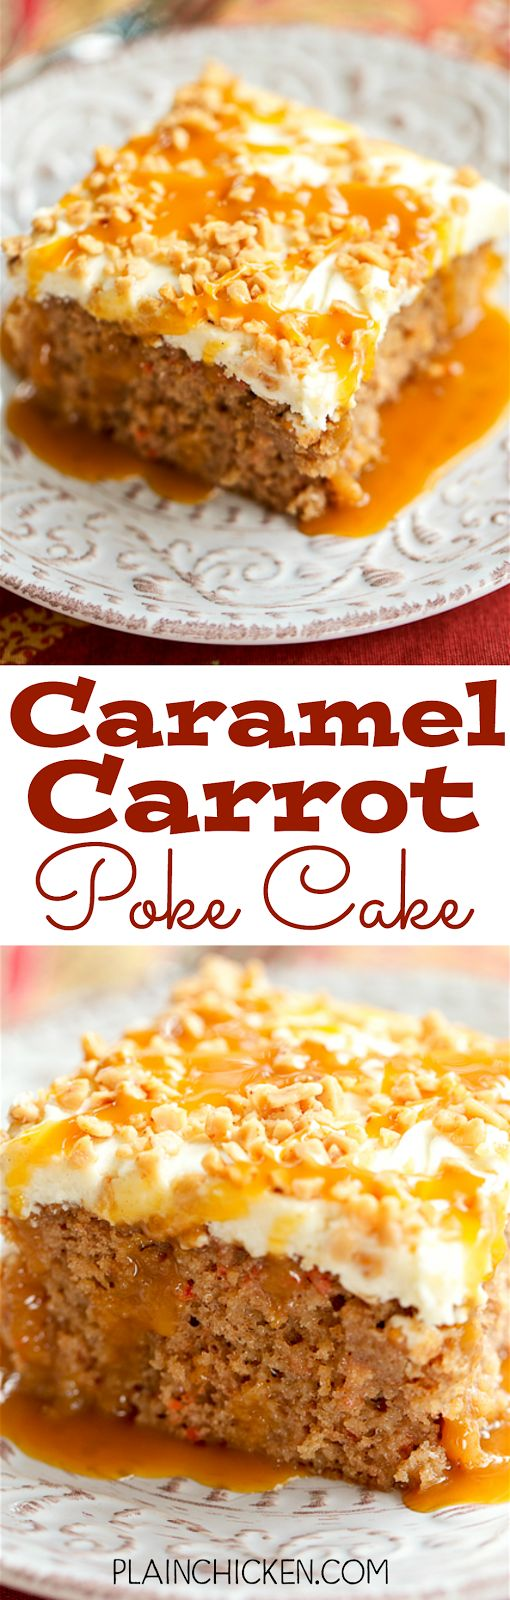 Caramel Carrot Poke Cake - carrot cake soaked in sweetened condensed milk and caramel and topped with a quick homemade cream cheese frosting. SO good! Great for potlucks and the holidays.